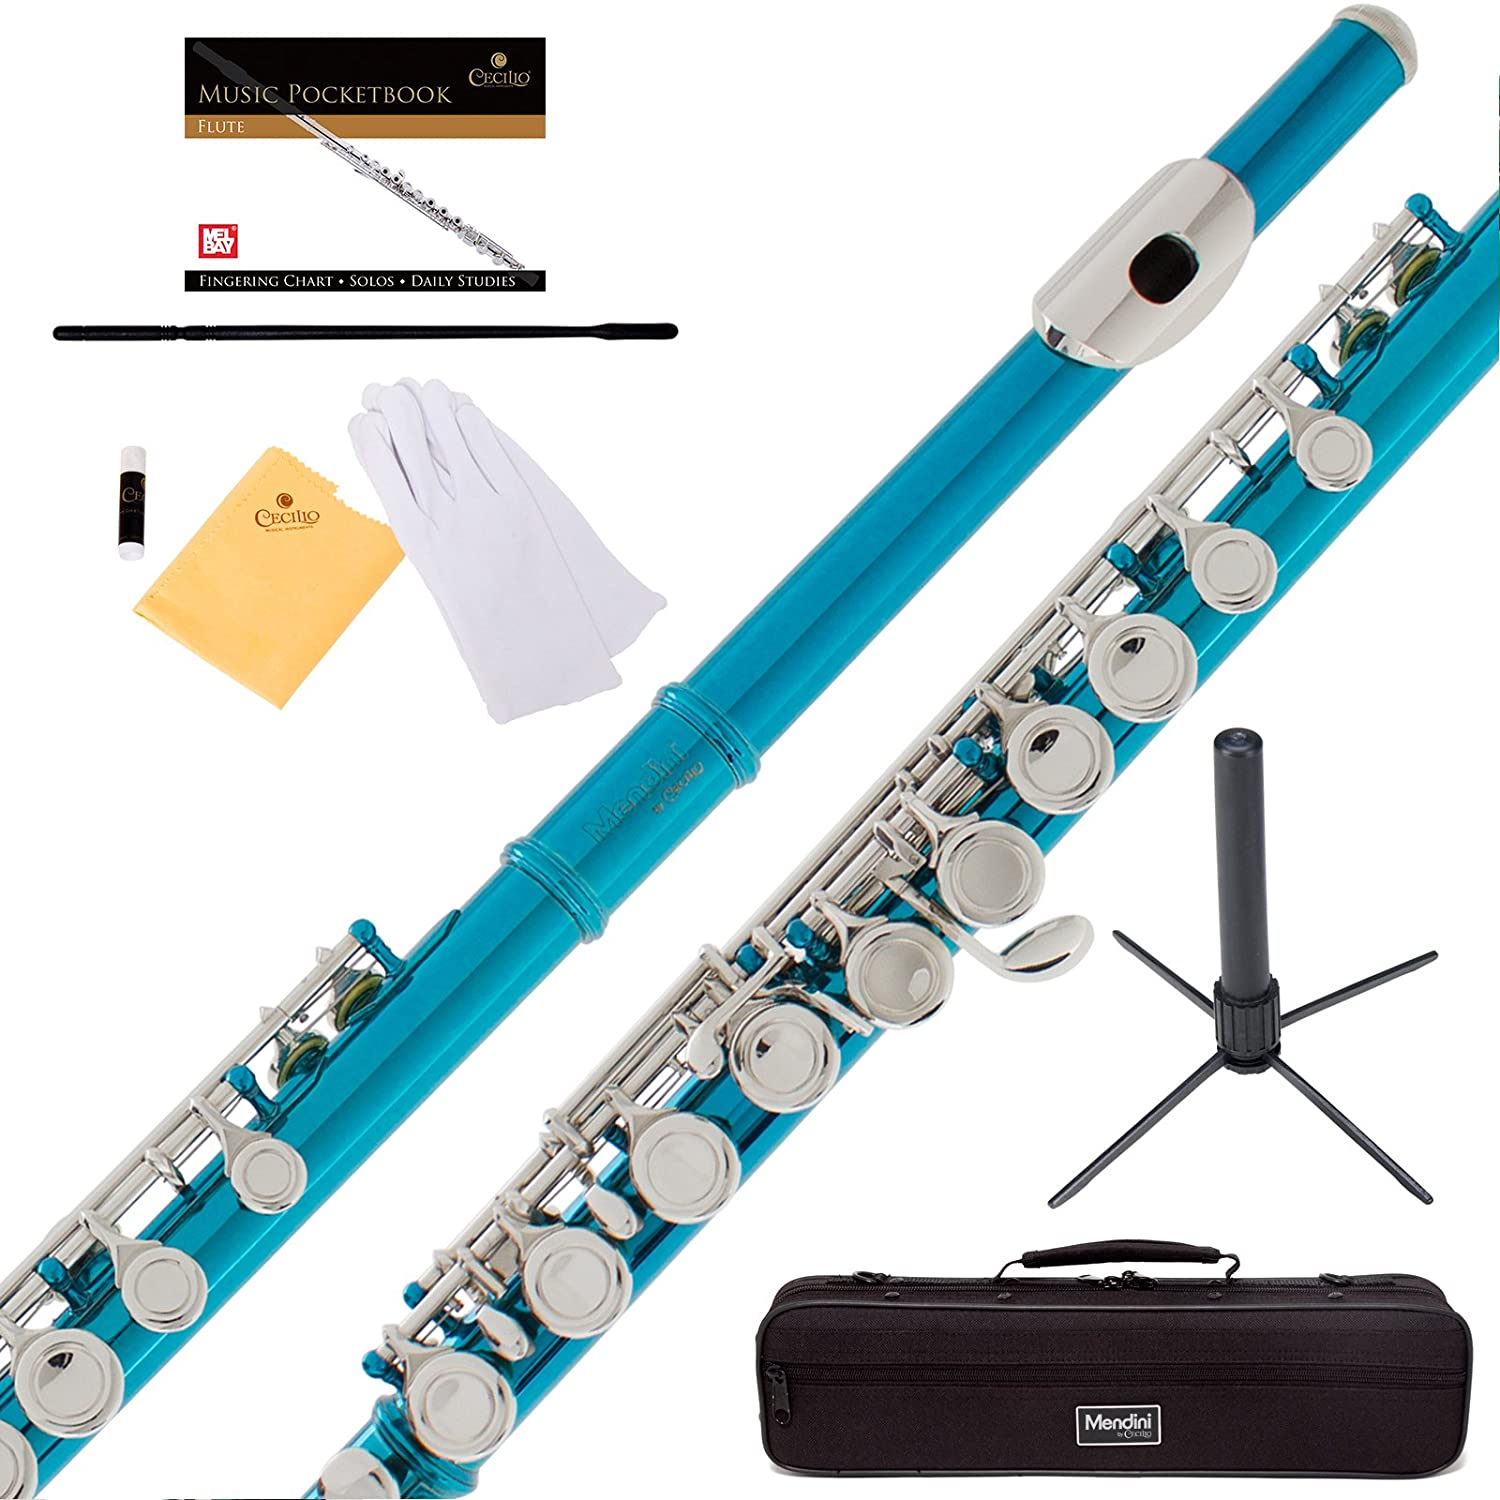 Mendini Sky Blue Closed Hole C Flute with Stand, 1 Year Warranty, Case, Cleaning Rod, Cloth, Joint Grease, and Gloves - MFE-SB+SD+PB Cecilio Musical Instruments